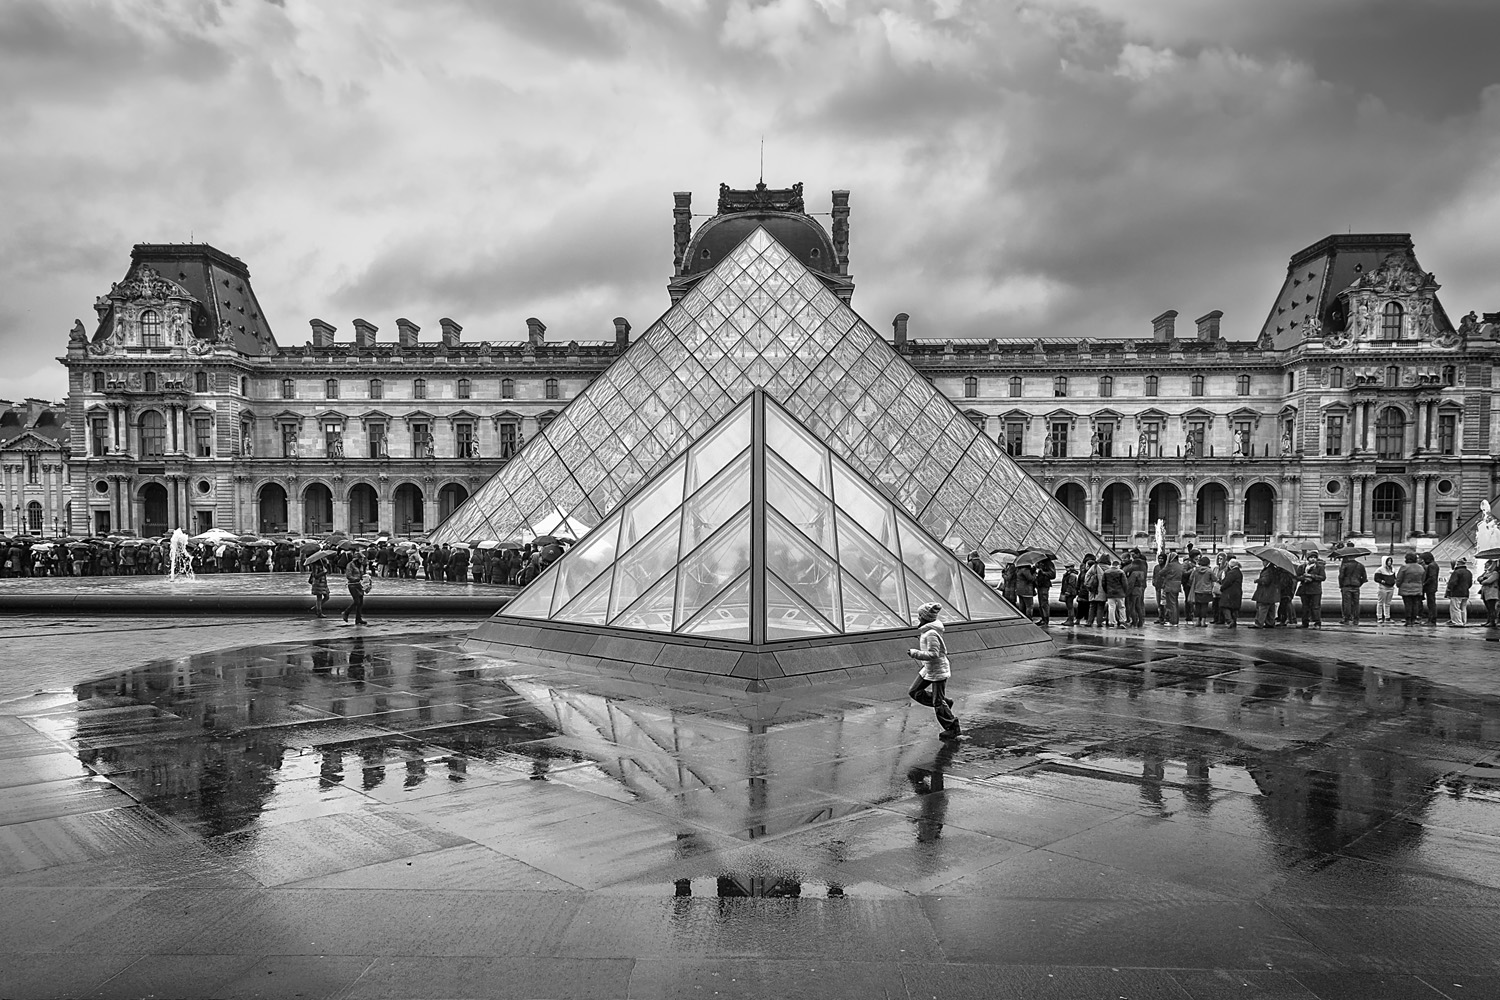 The Louvre on a damp day